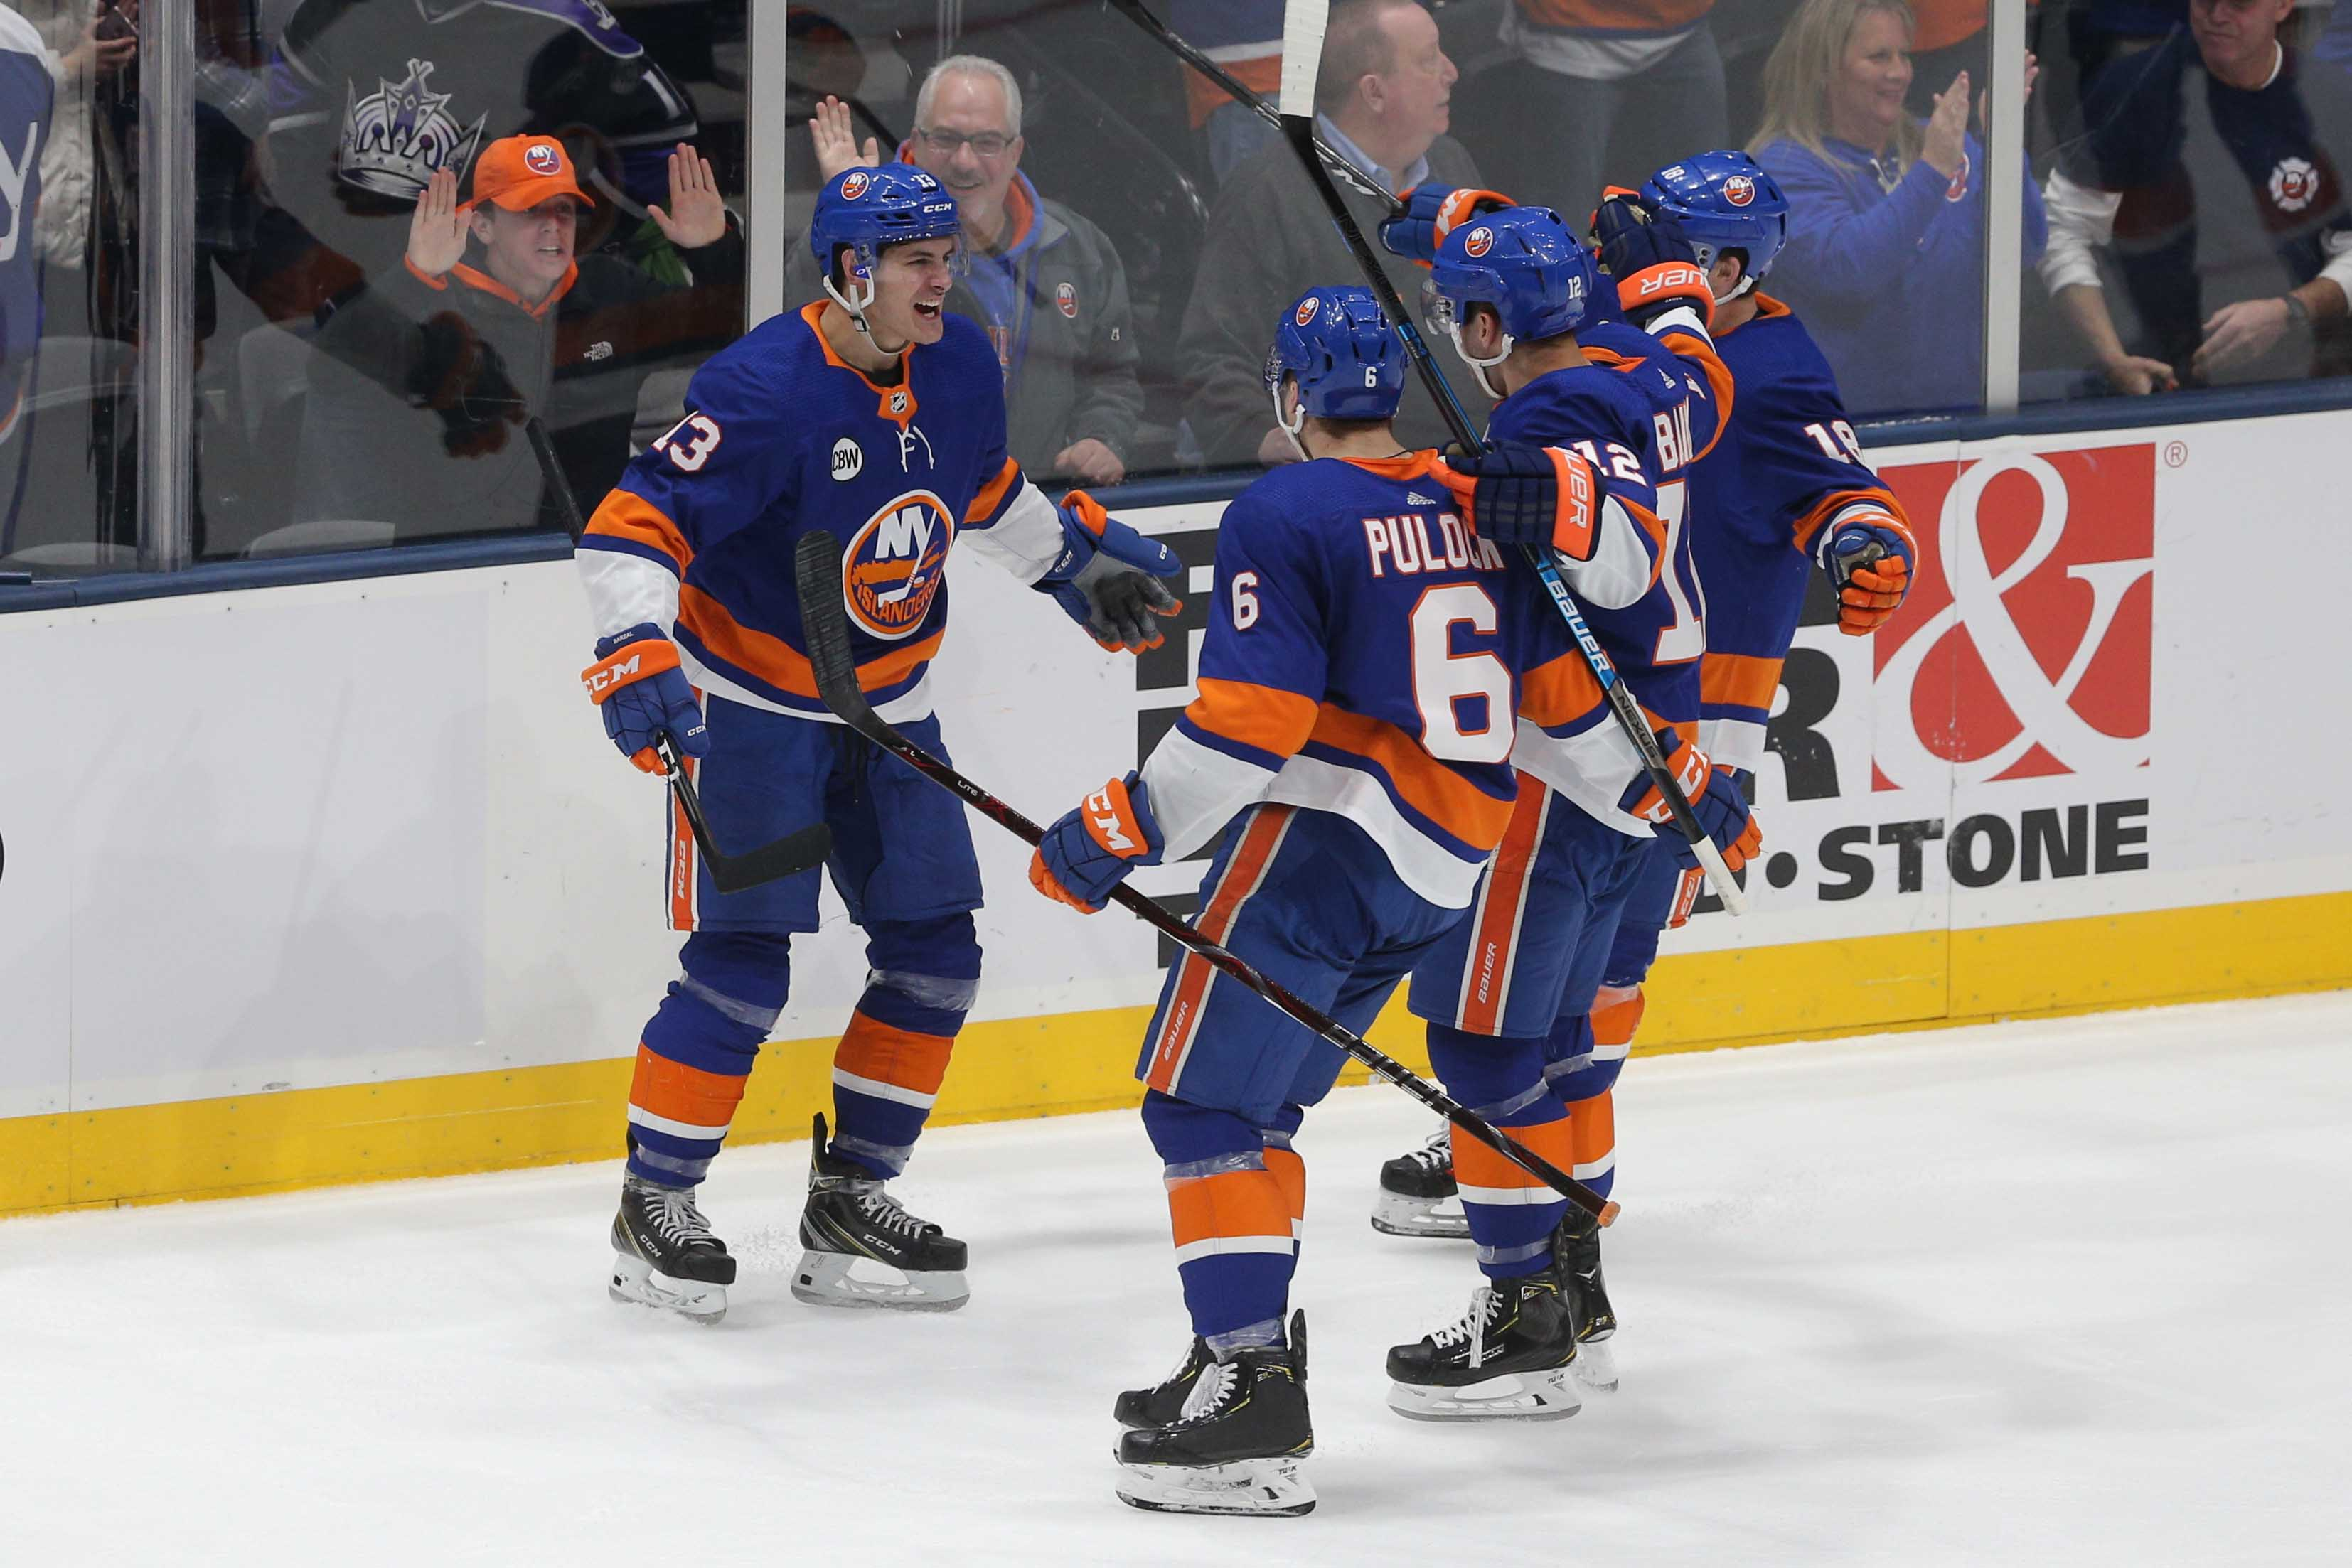 Feb 2, 2019; Uniondale, NY, USA; New York Islanders center Mathew Barzal (13) celebrates his game tying goal against the Los Angeles Kings with teammates during the third period at Nassau Veterans Memorial Coliseum. Mandatory Credit: Brad Penner-USA TODAY Sports